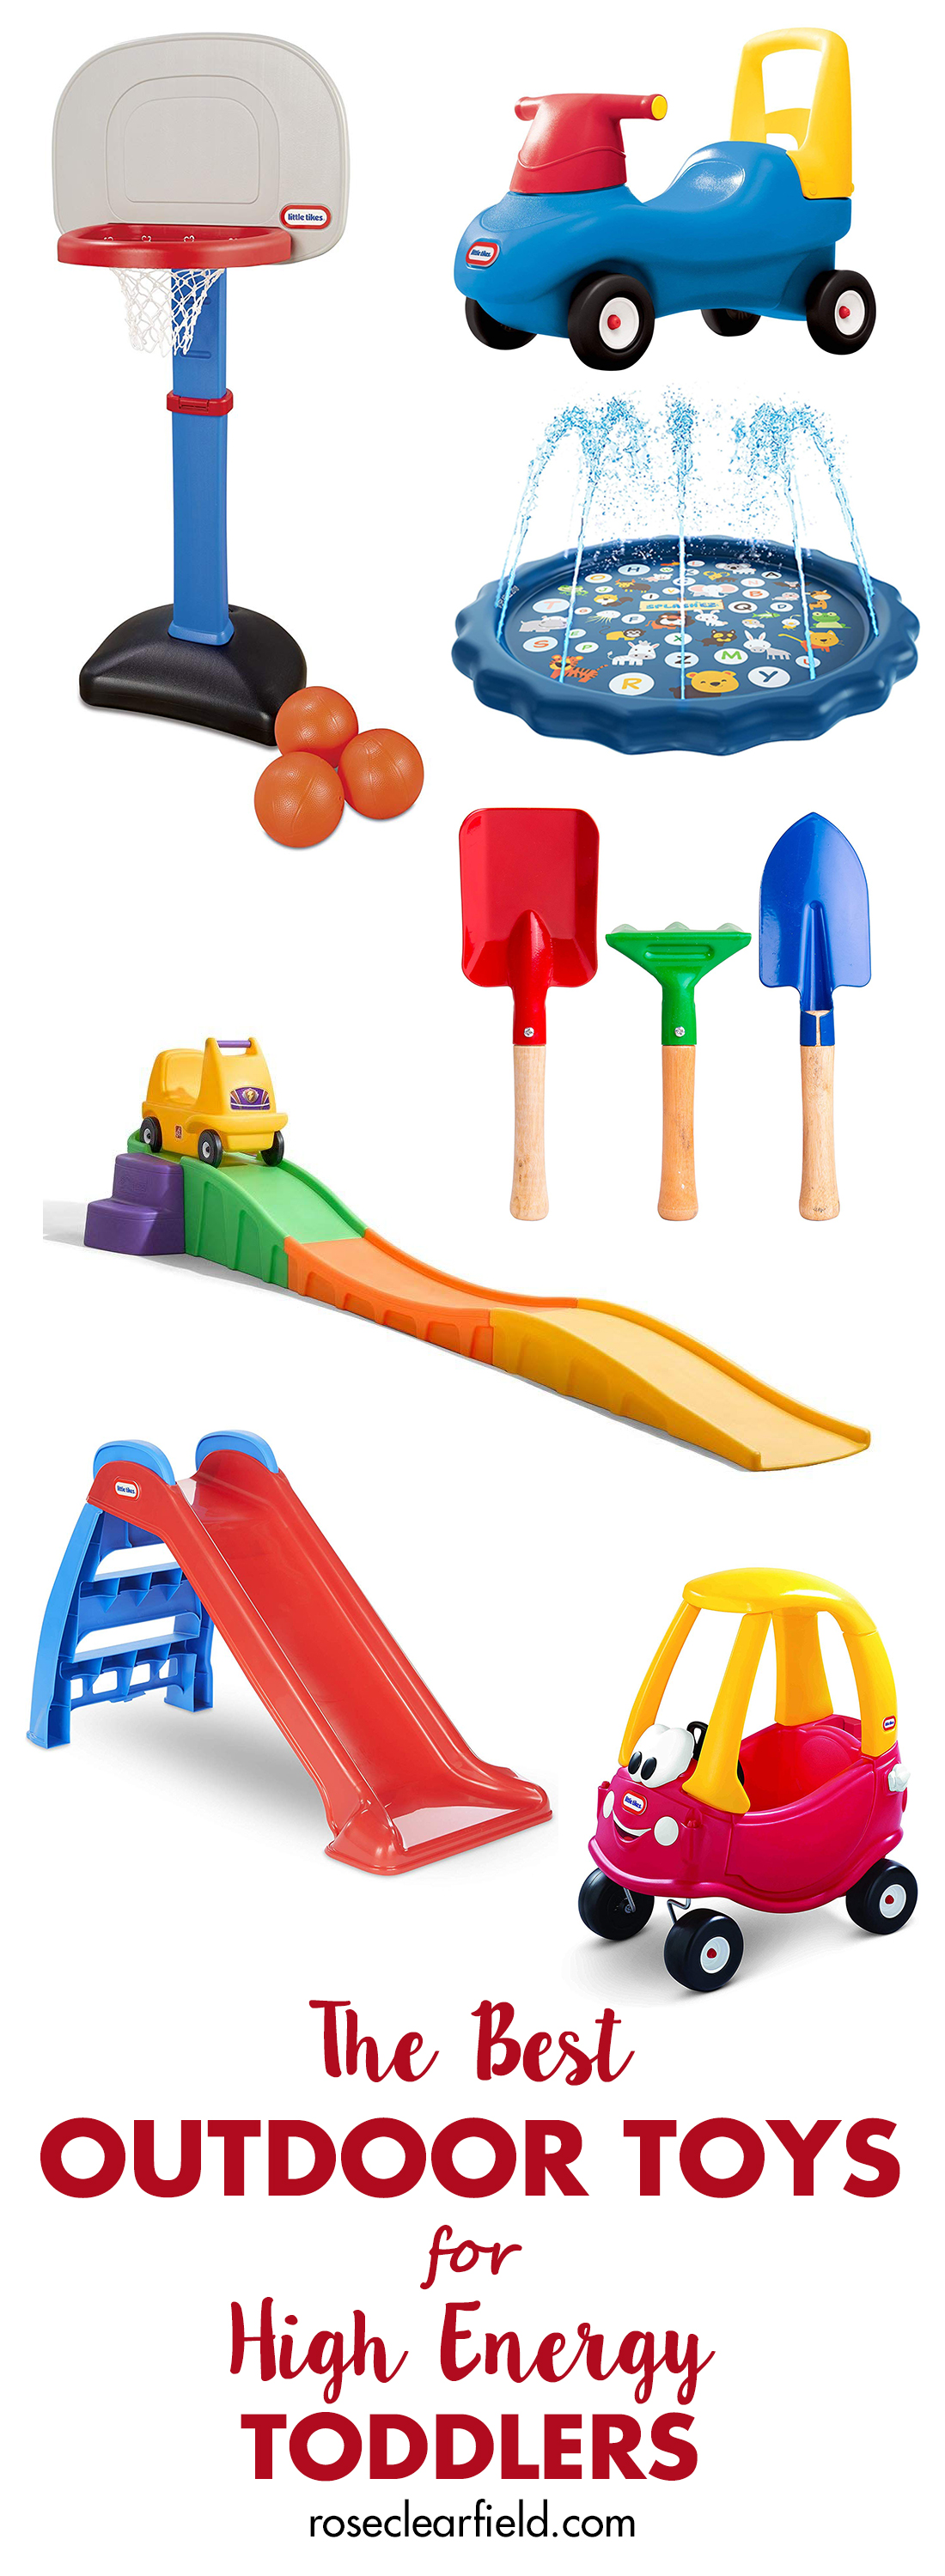 A roundup of the best outdoor toys for high energy toddlers. Help your little ones develop their gross motor skills and channel their energy in a positive manner! #outdoortoys #toddlertoys #highenergytoddlers #bestoutdoortoys | https://www.roseclearfield.com